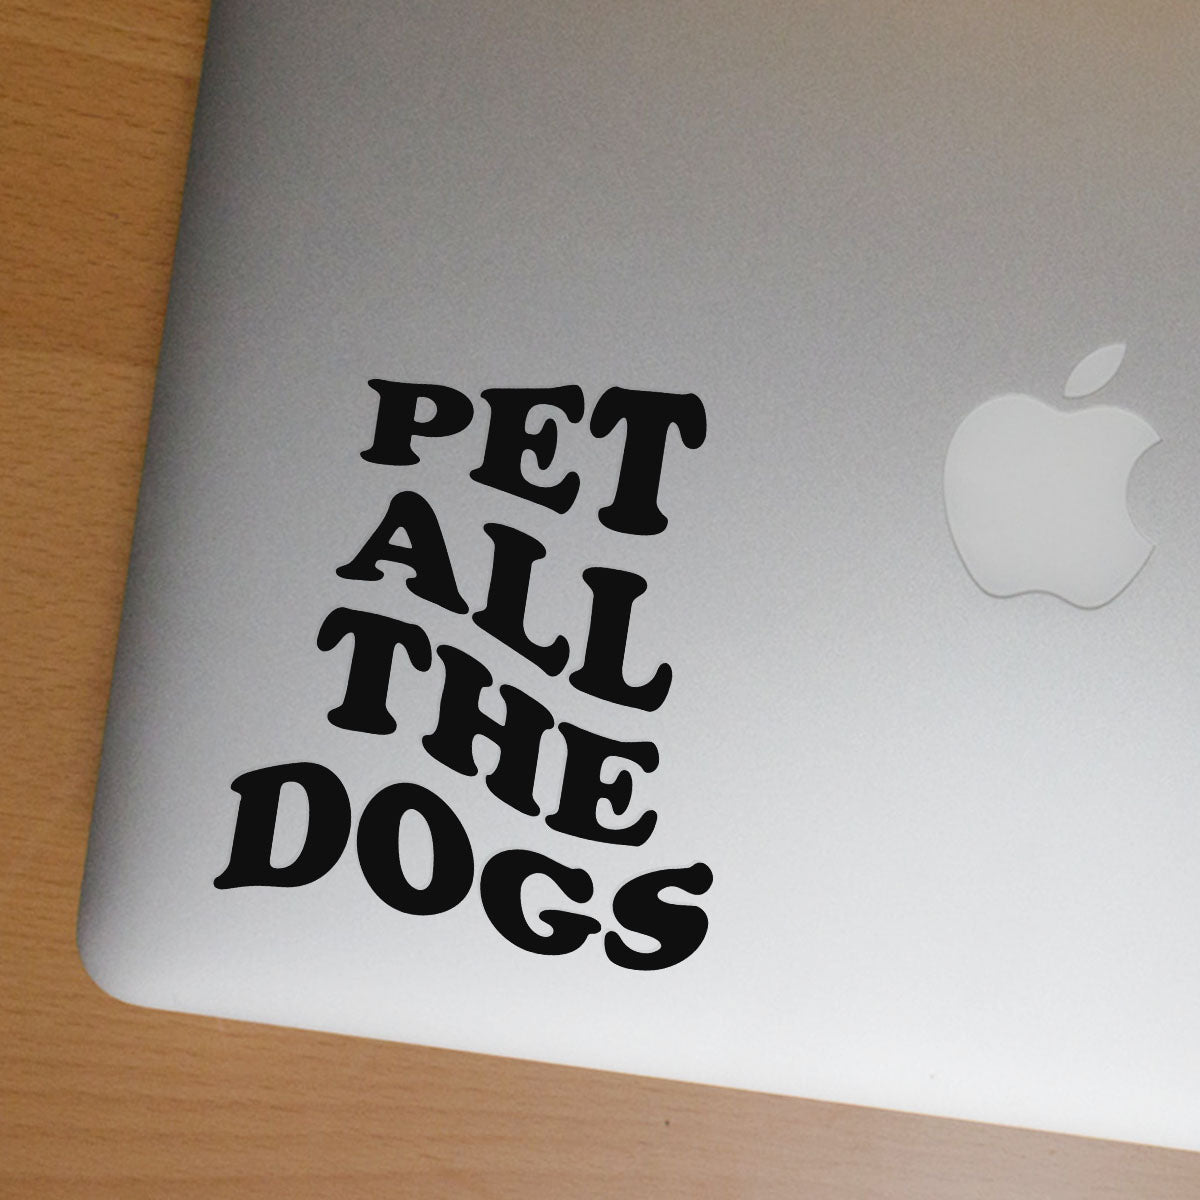 Pet All The Dogs Sticker